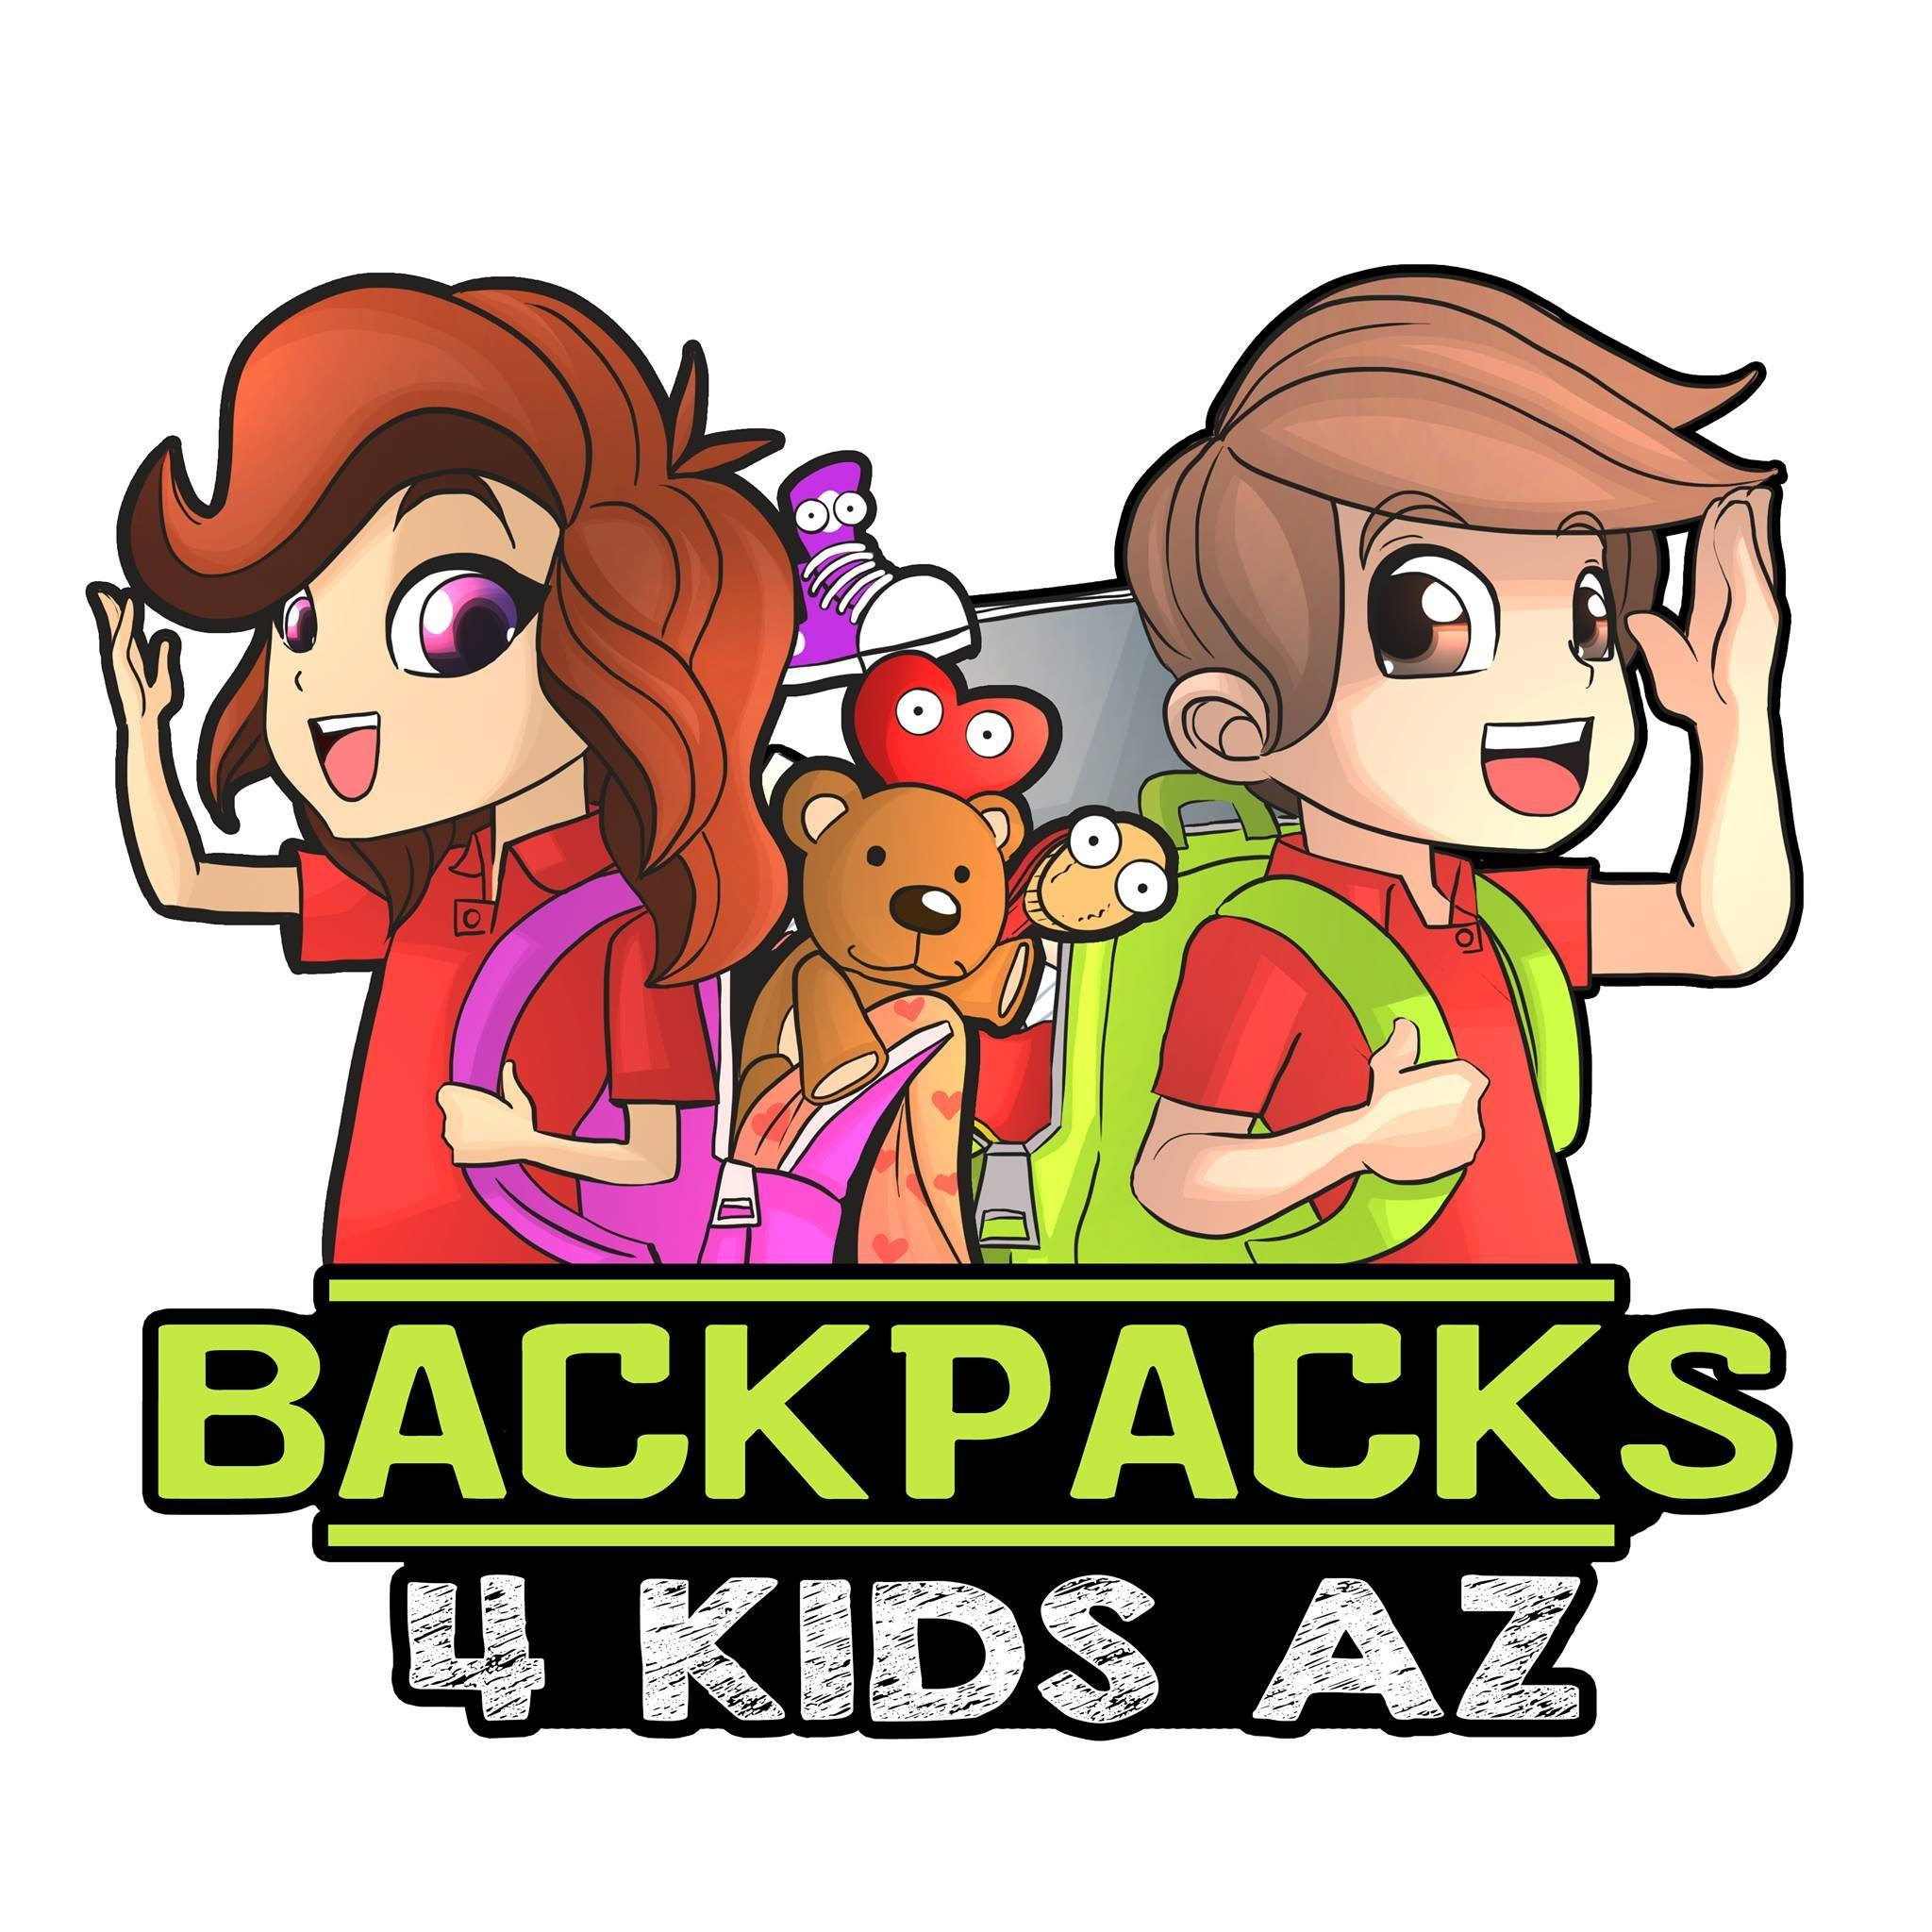 Backpacks 4 Kids